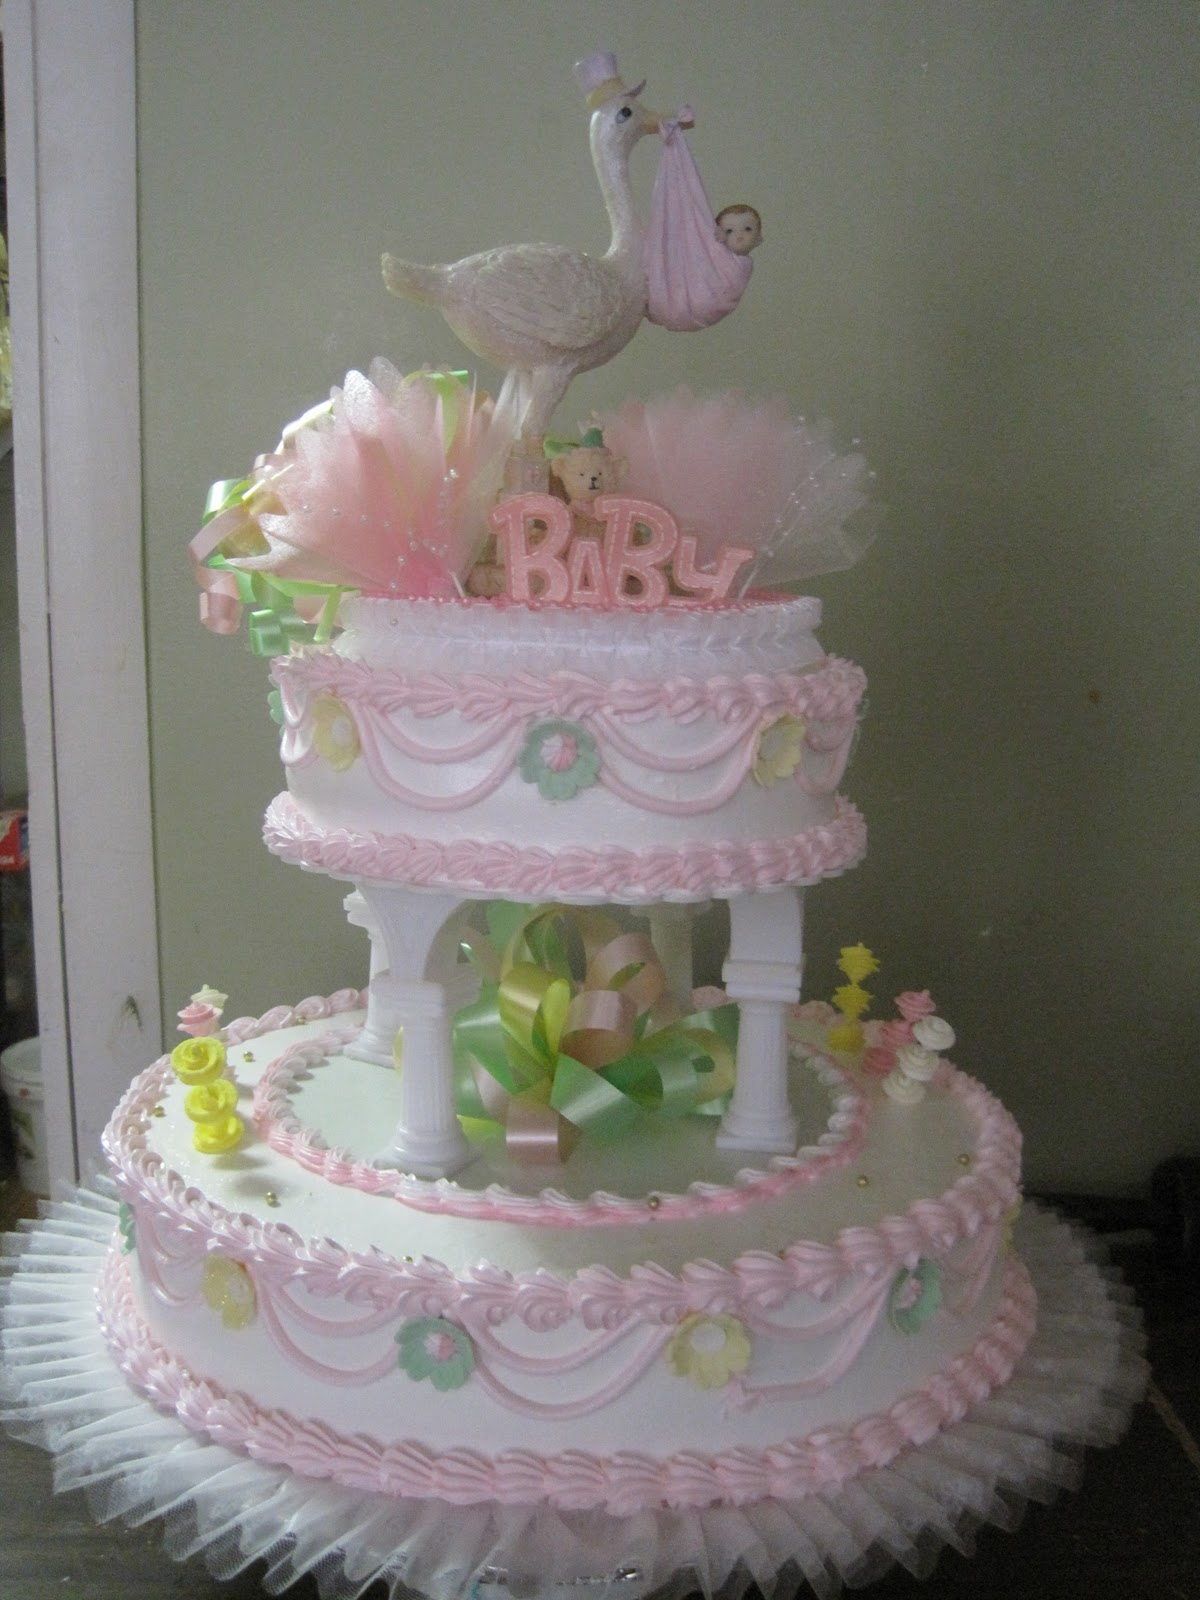 Dominican Baby Shower Cakes Nyc